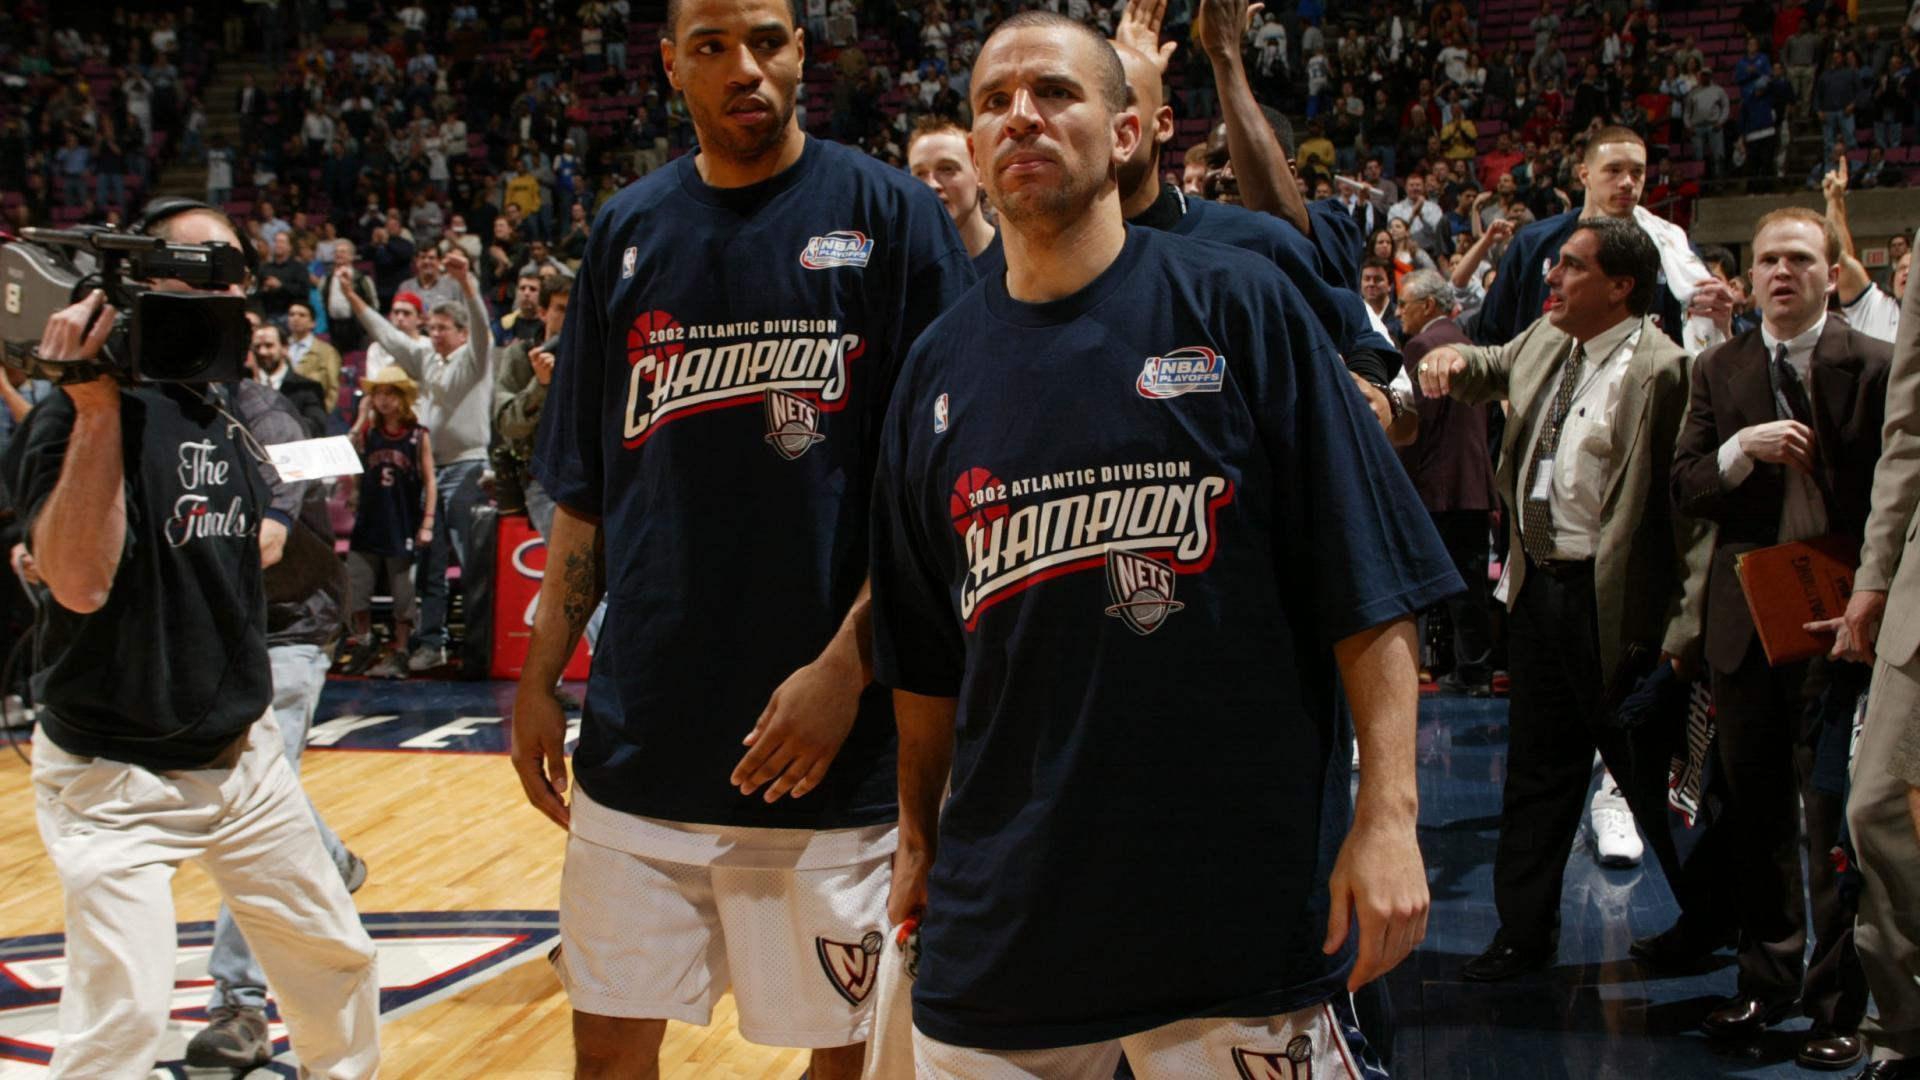 b91ca596900 Jason Kidd led the Nets to new heights in the 2001-02 season.